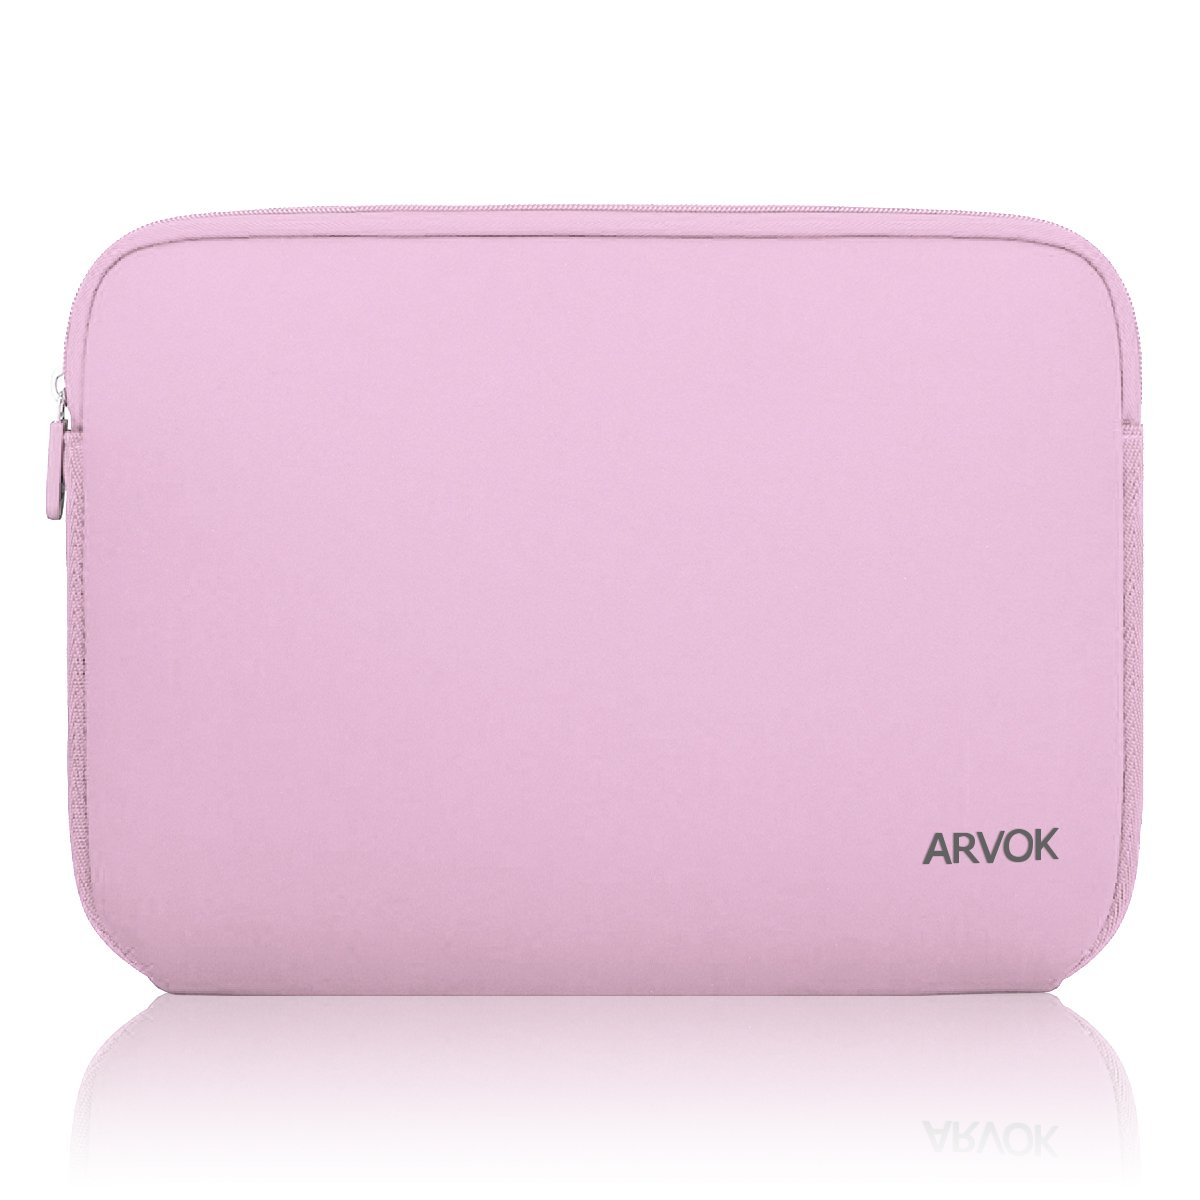 Arvok 13-14 Inch Laptop Sleeve Multi-Color & Size Choices Case/Water-Resistant Neoprene Notebook Computer Pocket Tablet Carrying Bag Cover, Pink